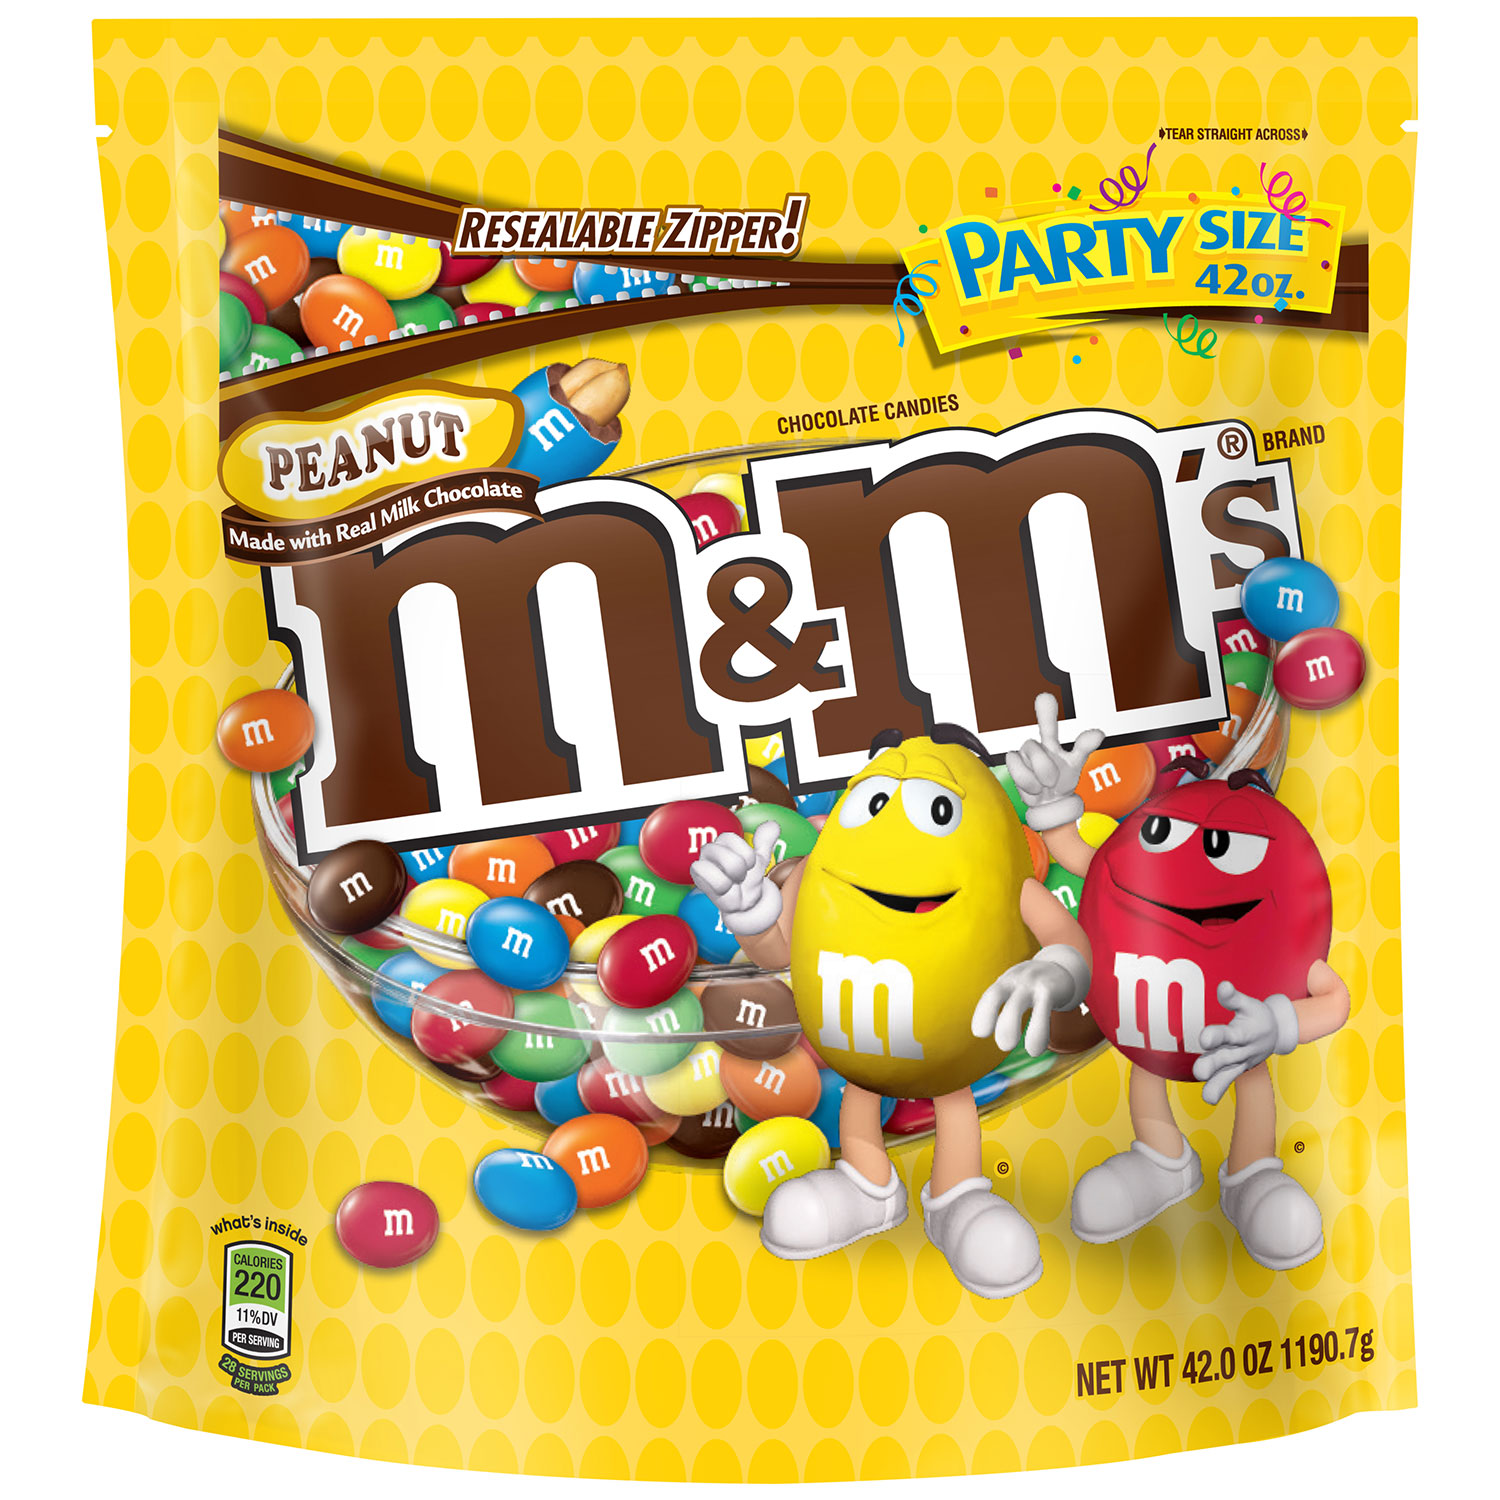 M&M'S Peanut Chocolate Candy Party Size Bag, 42 oz